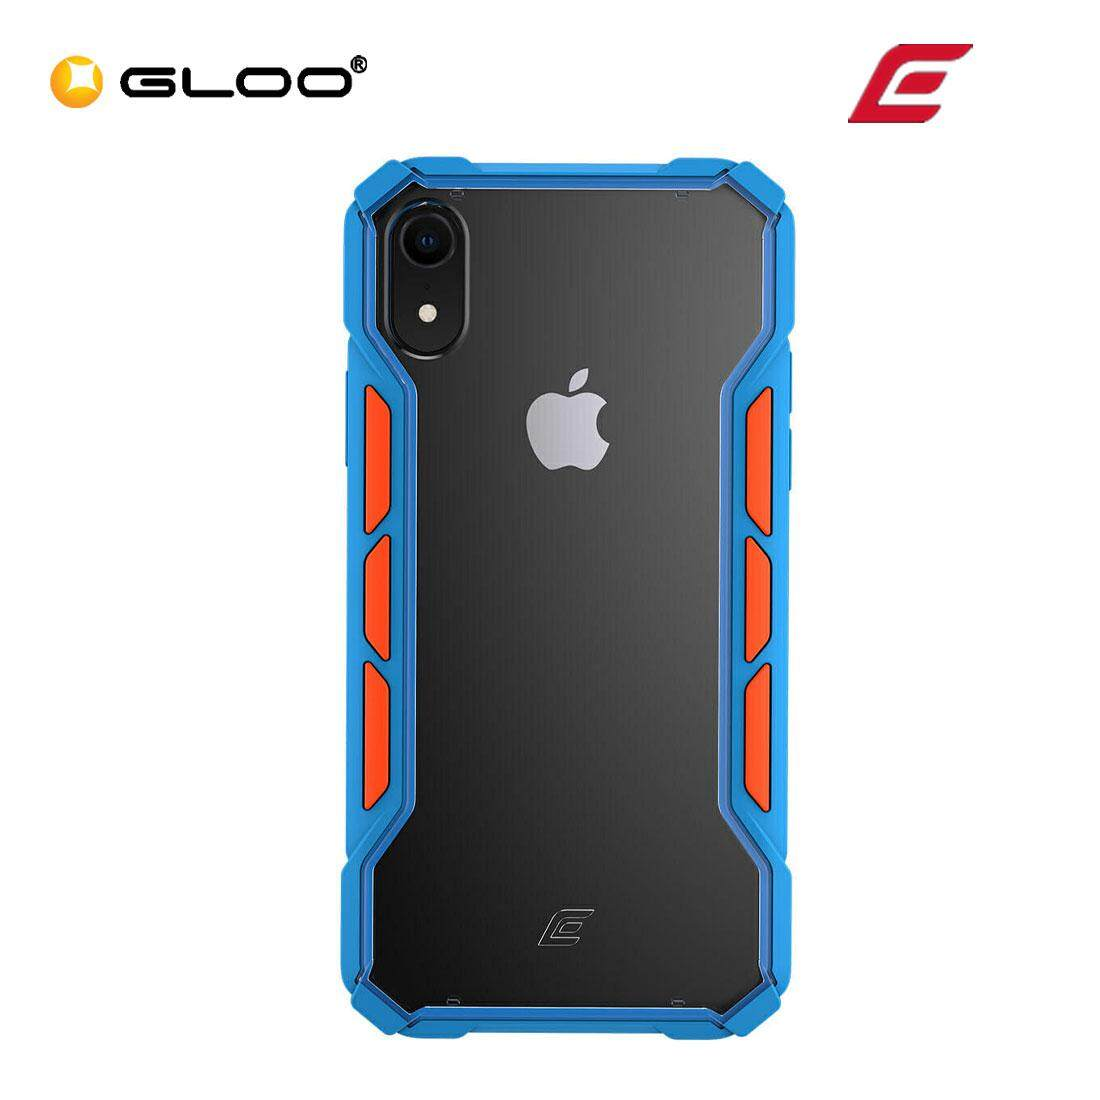 Element Case - Rally (Xs Max) - Light greyLime/BlueOrange/Black